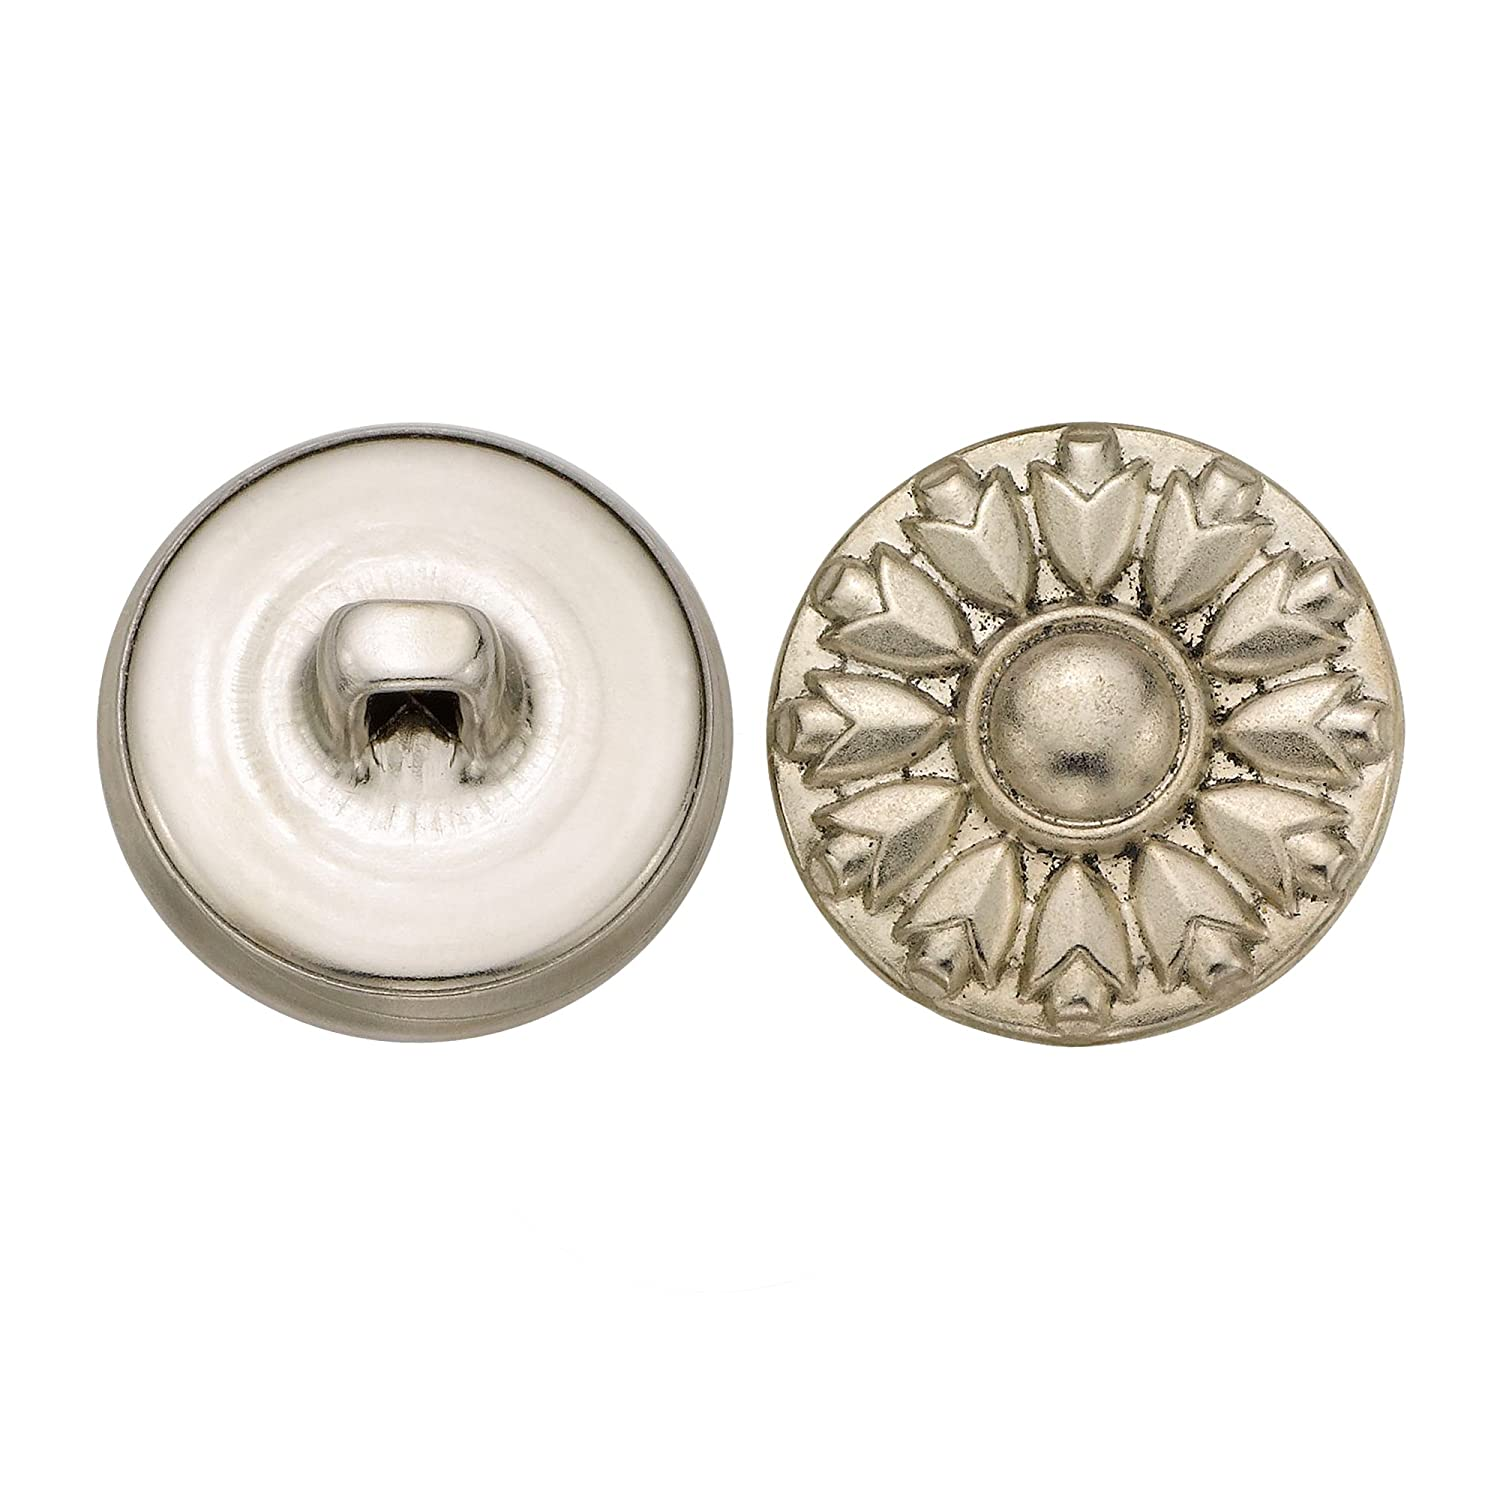 C/&C Metal Products 5229 Modern Metal Button 36-Pack C/&C Metal Products Corp Size 30 Ligne Nickel